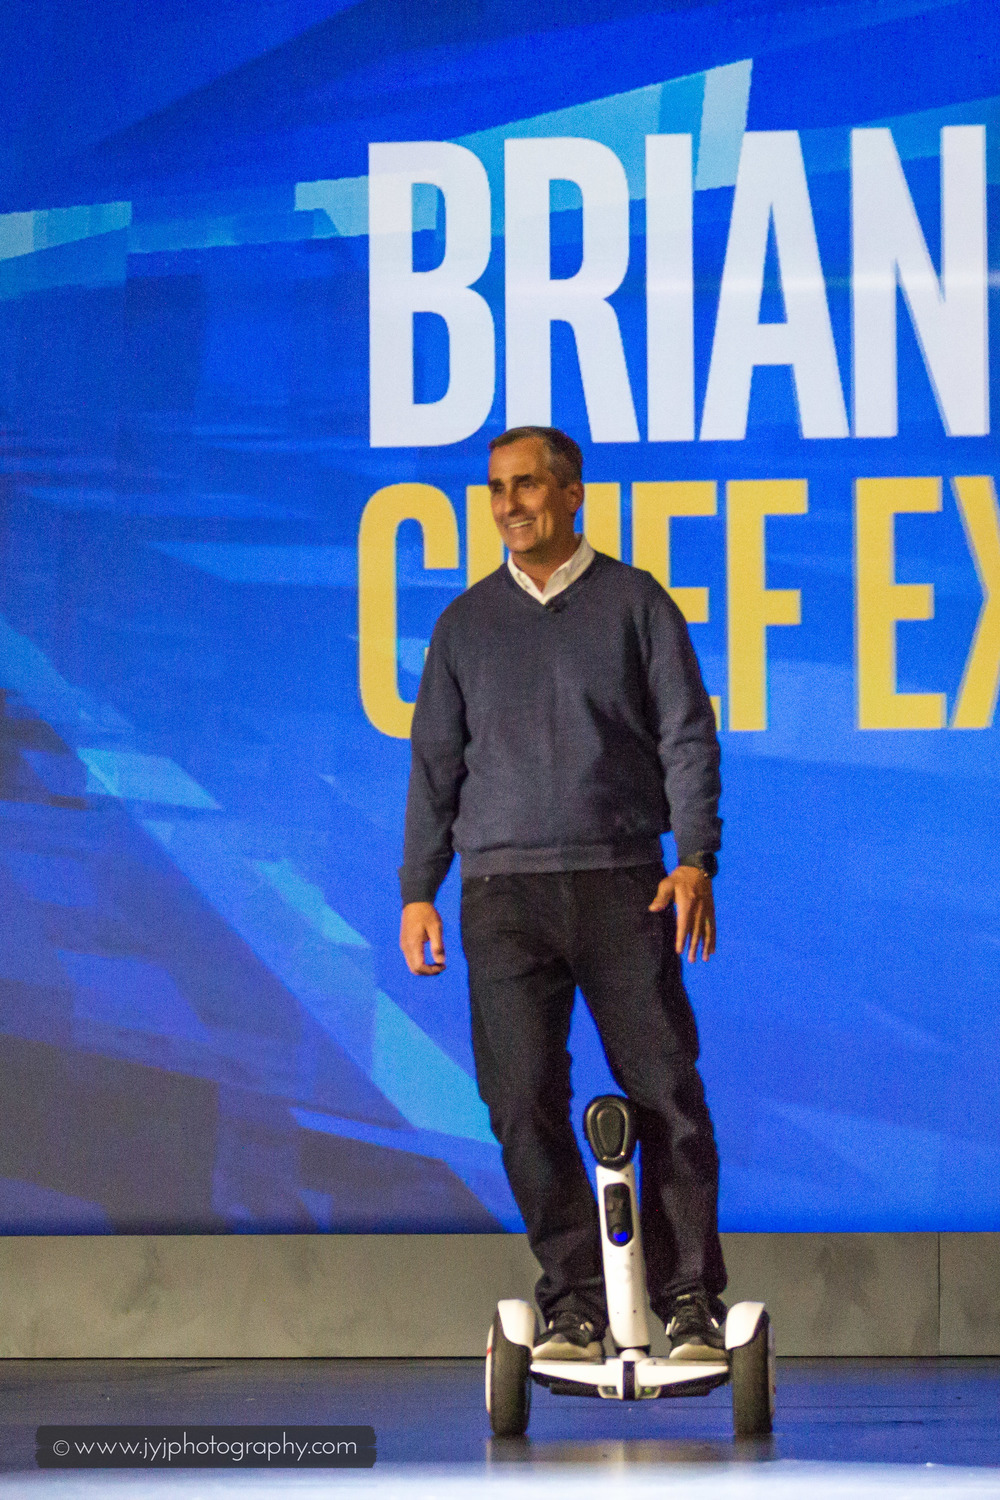 Brian Krzanich entering the stage using a Segway